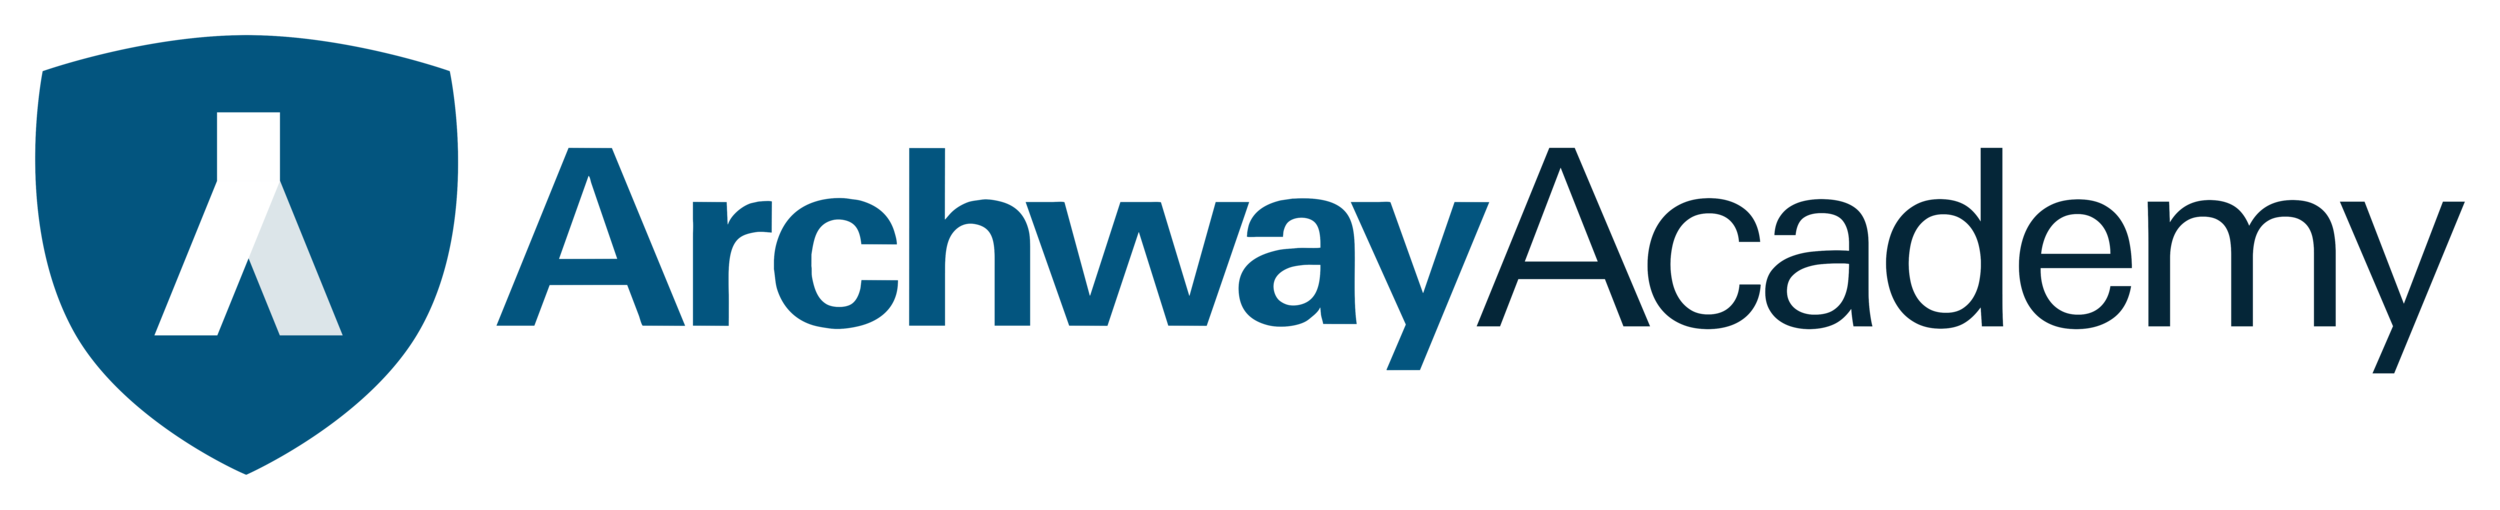 ArchwayProductLogo-Academy-Logo.png